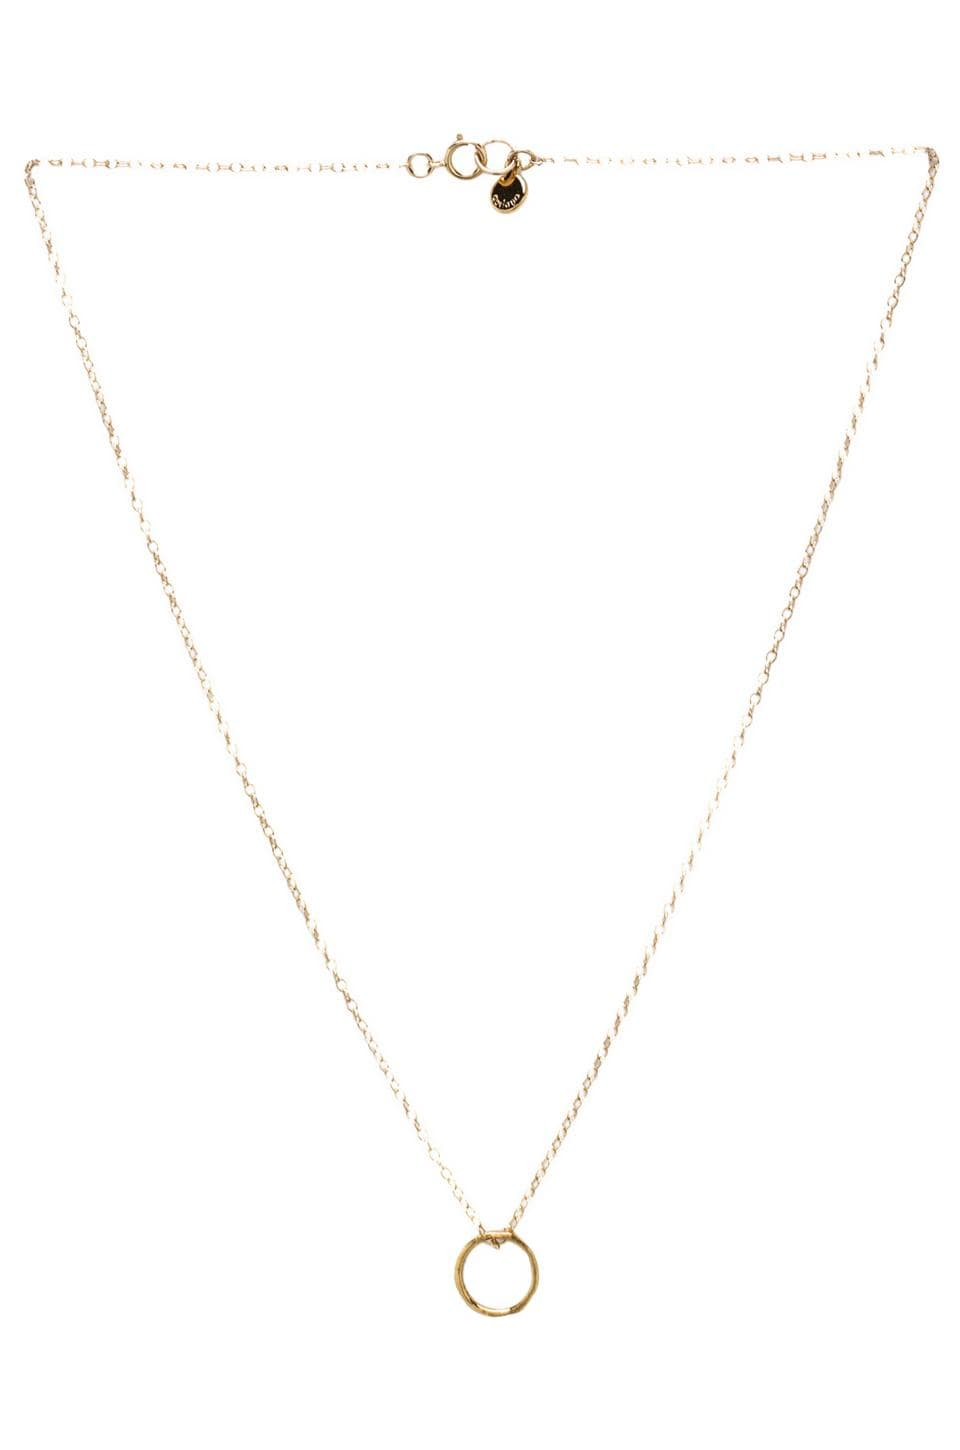 gorjana G Pressed Small Necklace in Gold